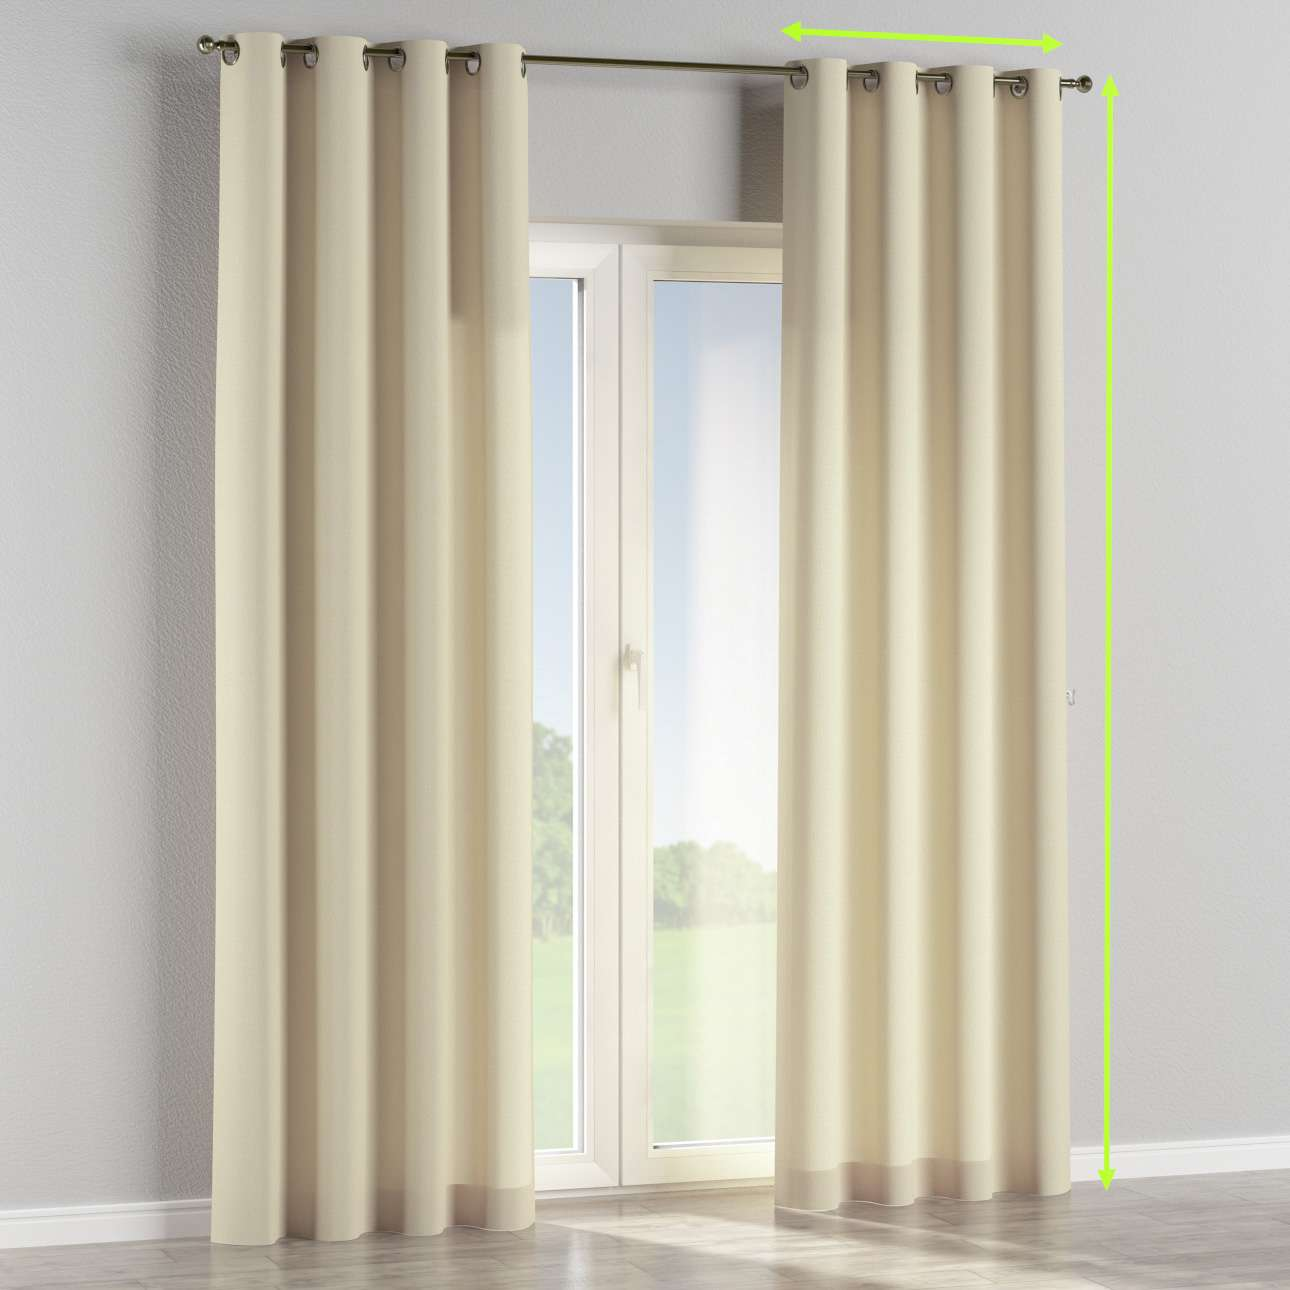 Eyelet curtain in collection Chenille, fabric: 702-22